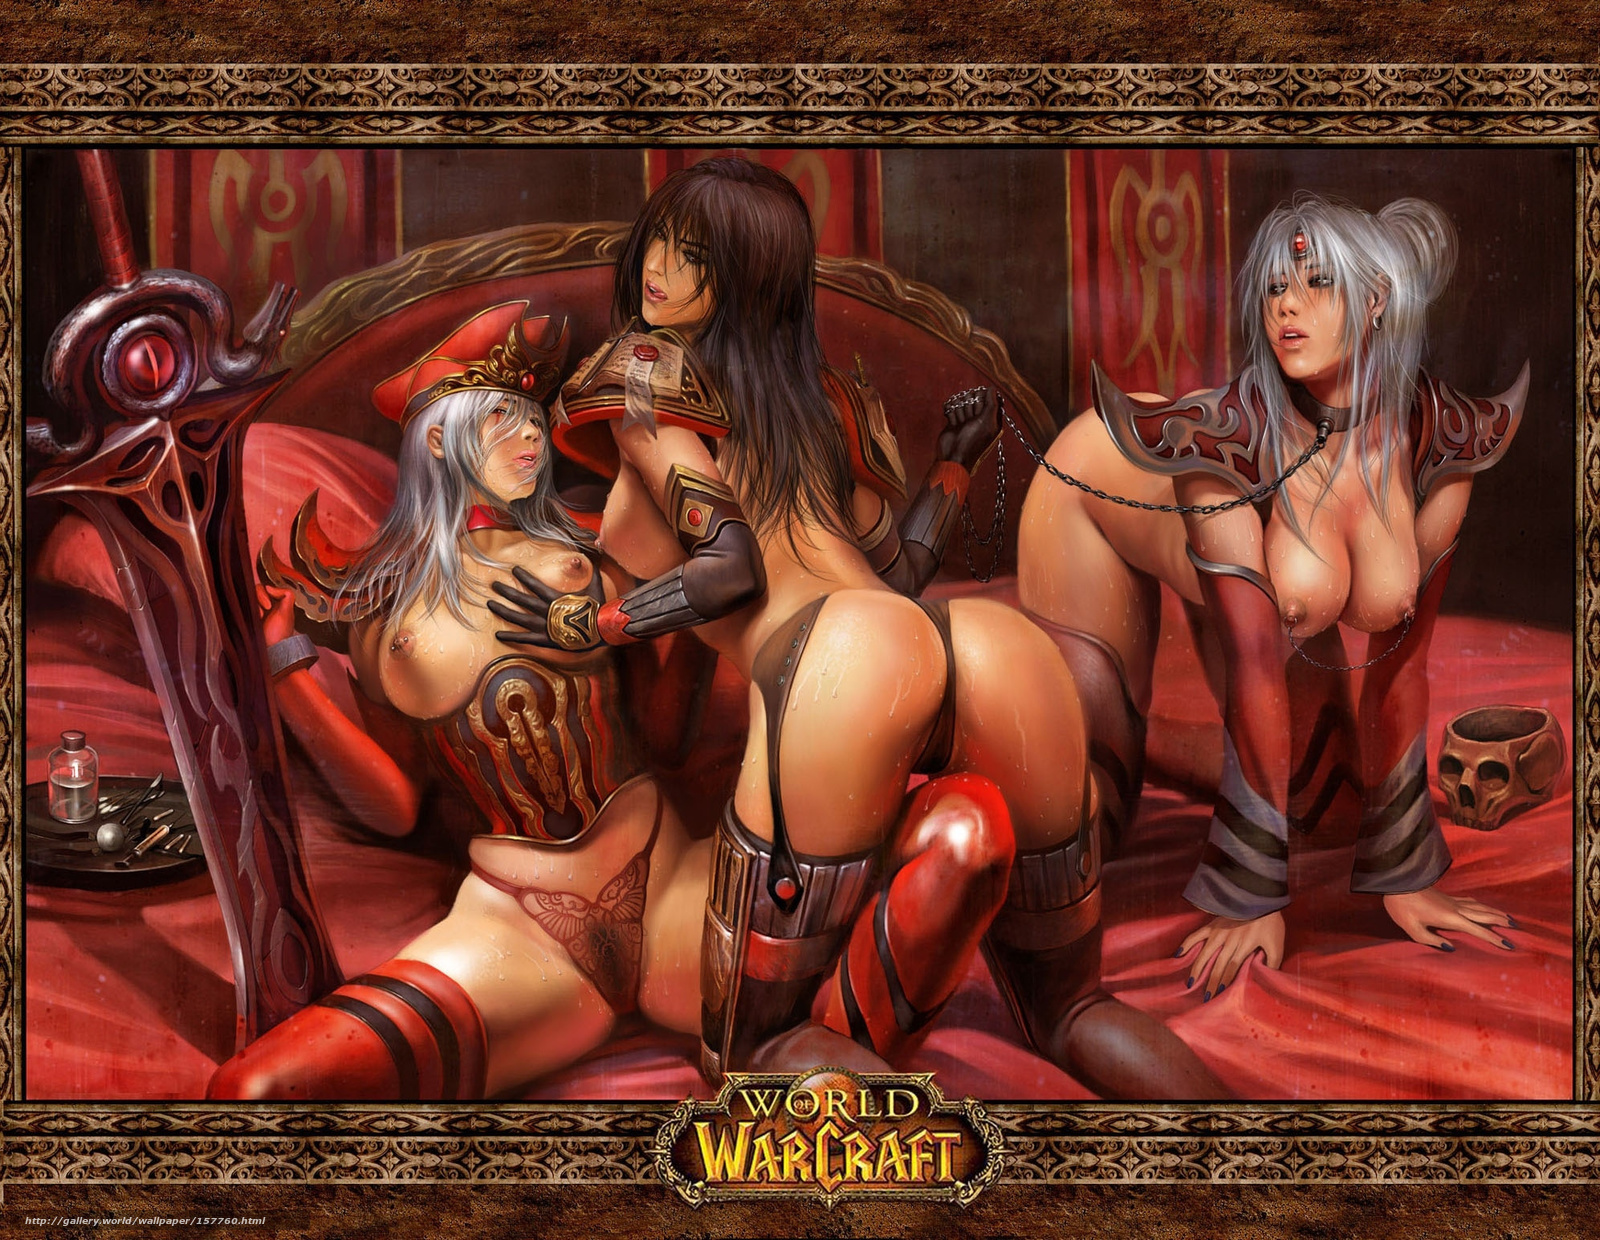 World of warcraft pic xxx porno film